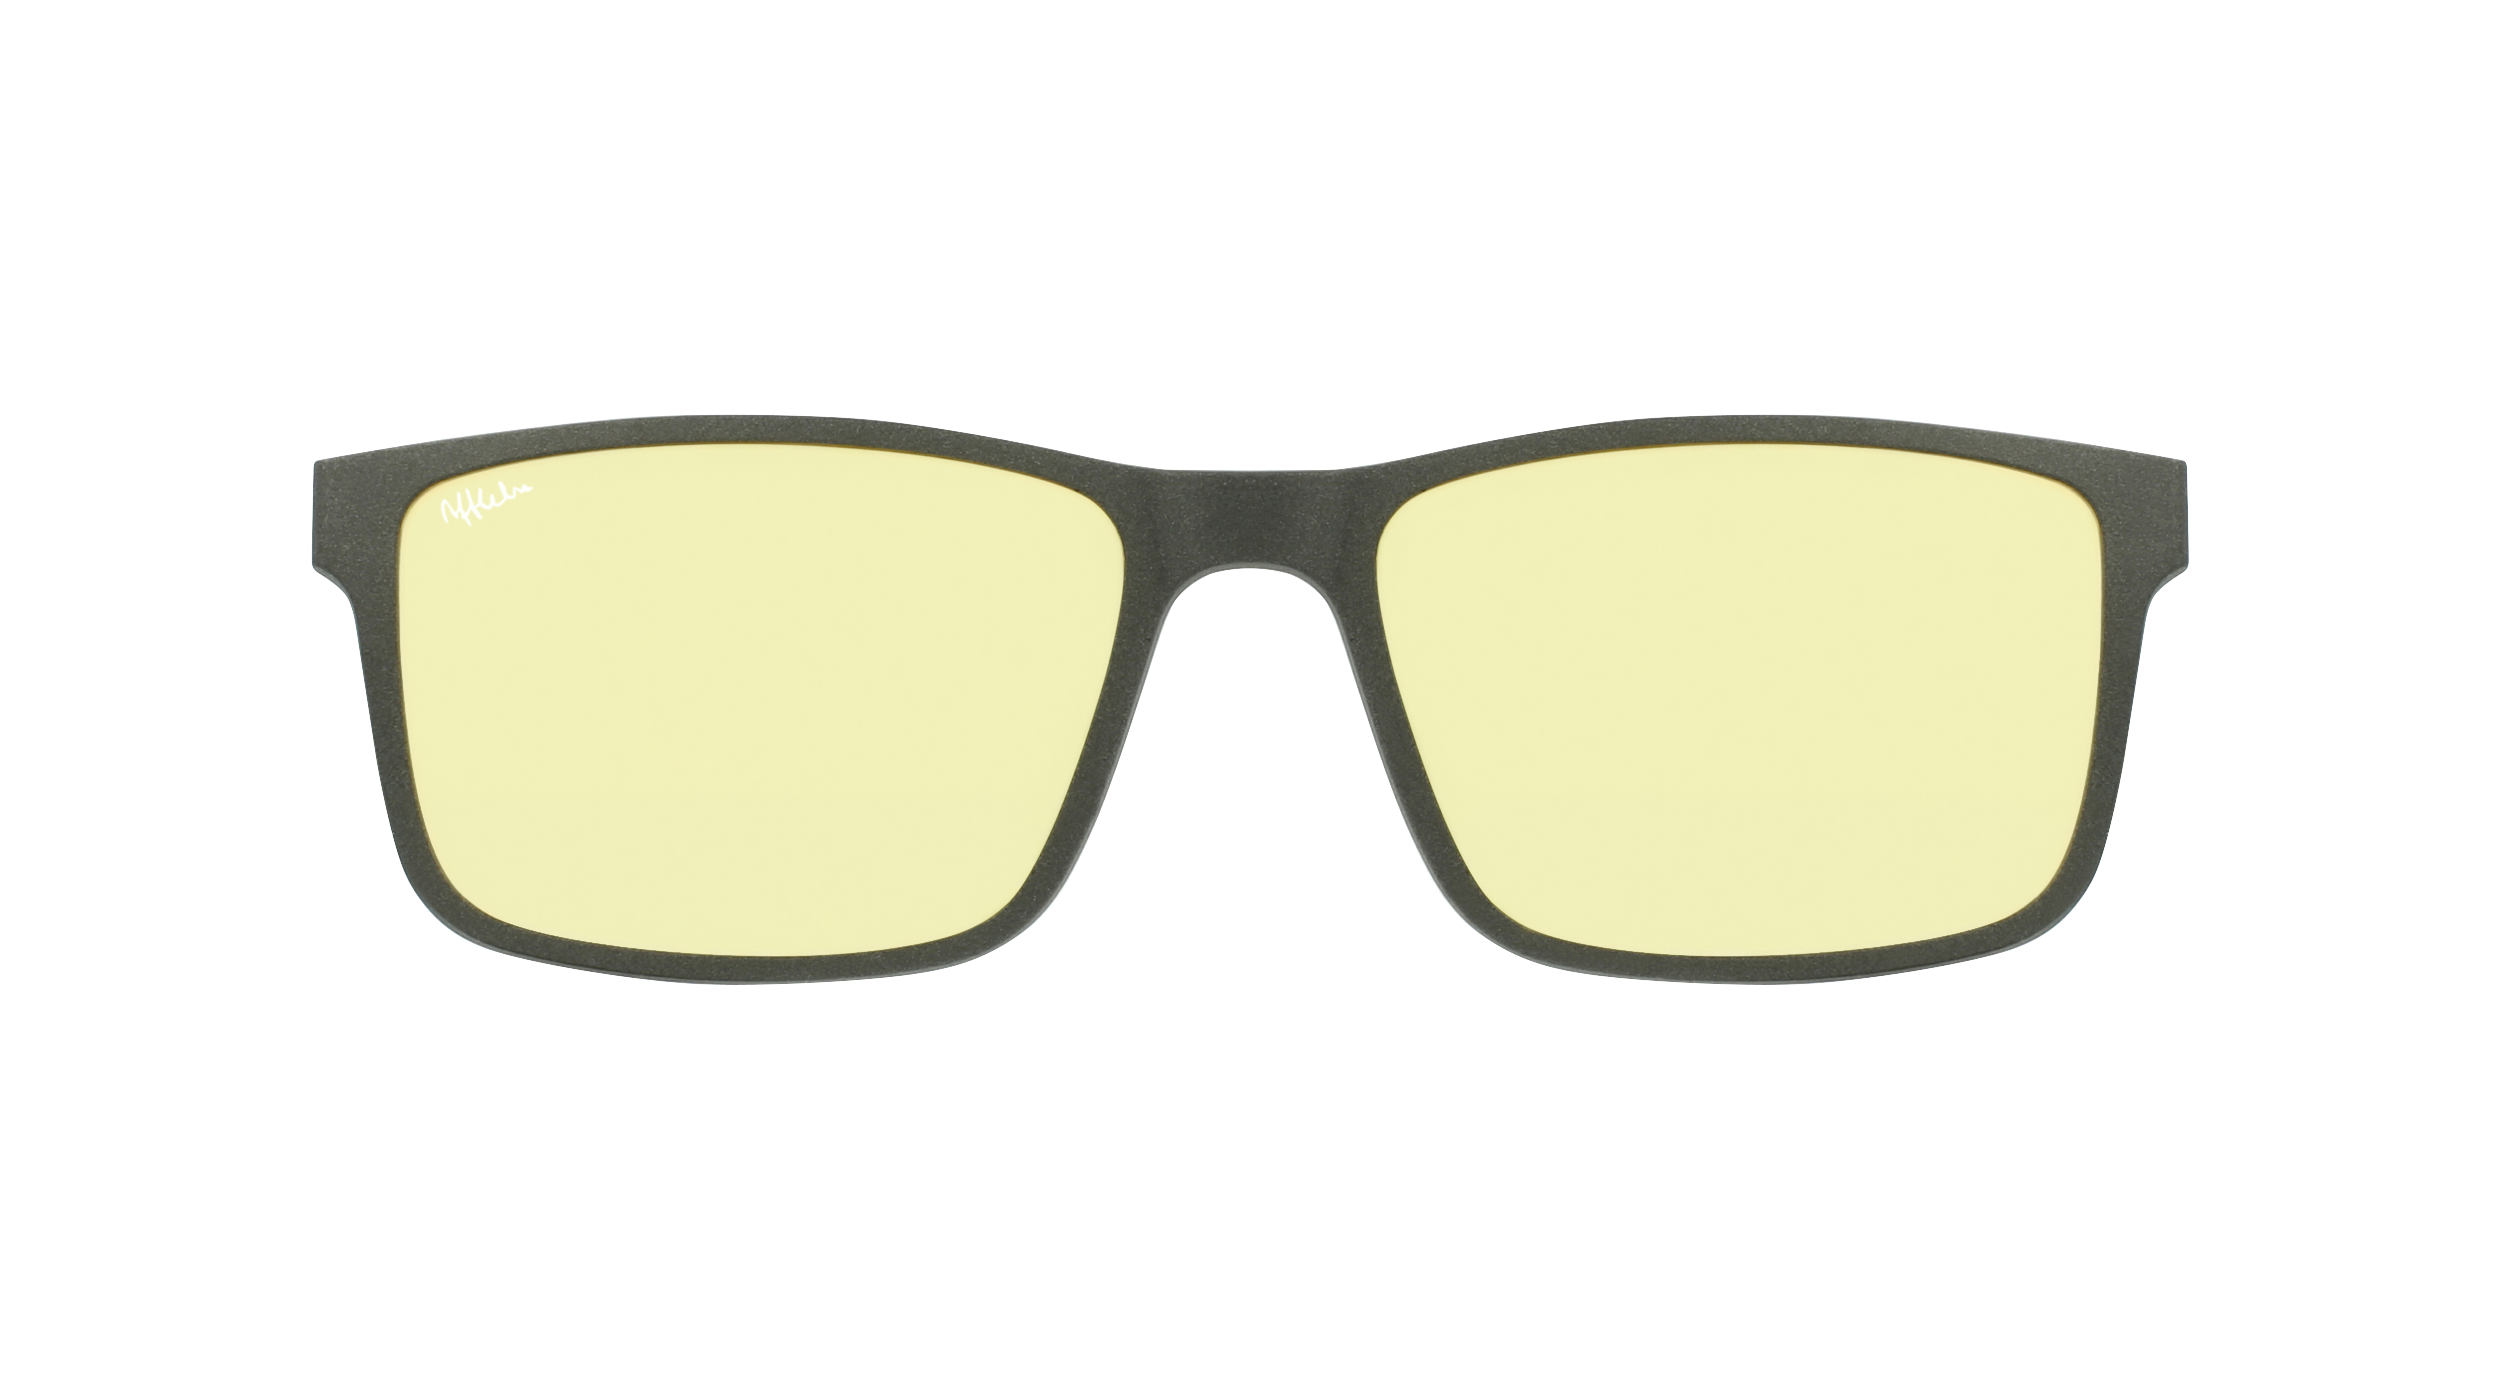 afflelou/france/products/smart_clip/clips_glasses/07630036457481.png